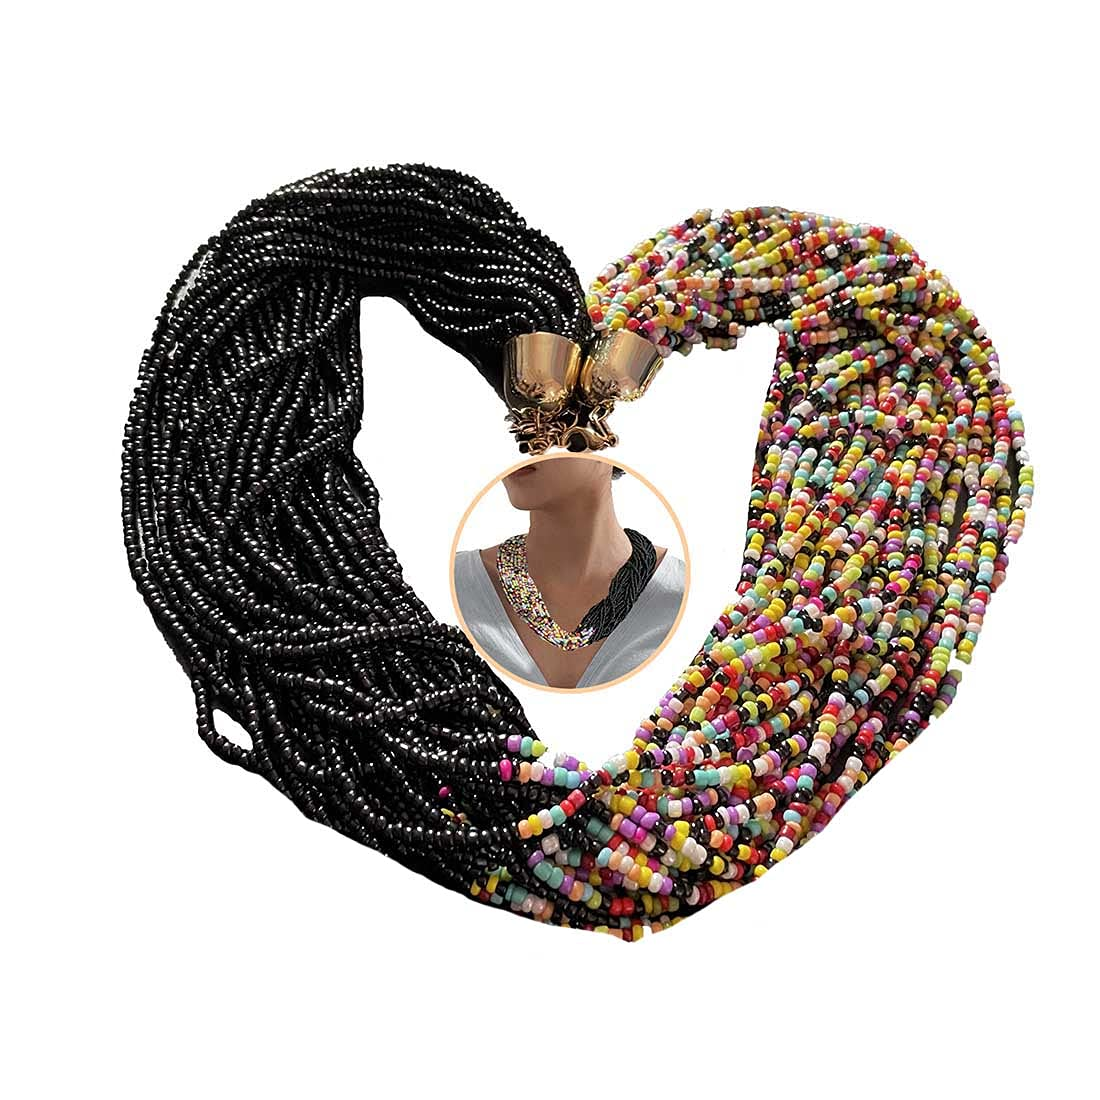 Grestal Bib Seed Beads Statement Choker Necklace Boho Multi-Layer Strands Long Collar Necklace Chunky Necklaces Delicate Jewelry Adjustable for Women Girls (B)